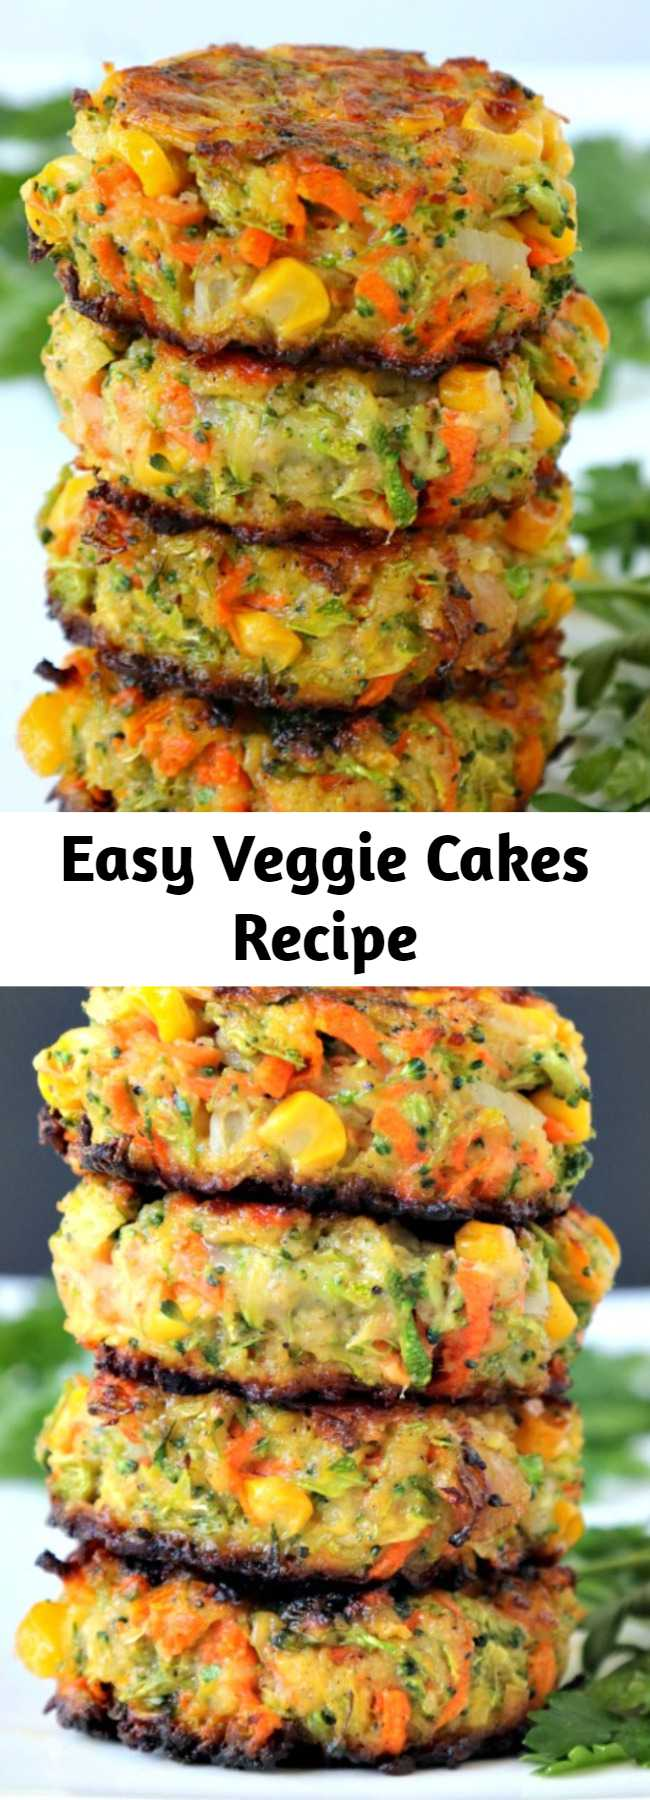 Easy Veggie Cakes Recipe - Crispy, easy veggie cakes made with grated vegetables – carrots, zucchini, broccoli and corn. Great for lunches, side dish or your small picky eaters. Fluffy Vegetable Cakes perfect for a side or a Meatless Monday meal. #vegetablefritters #veggiecakes #vegetablecake